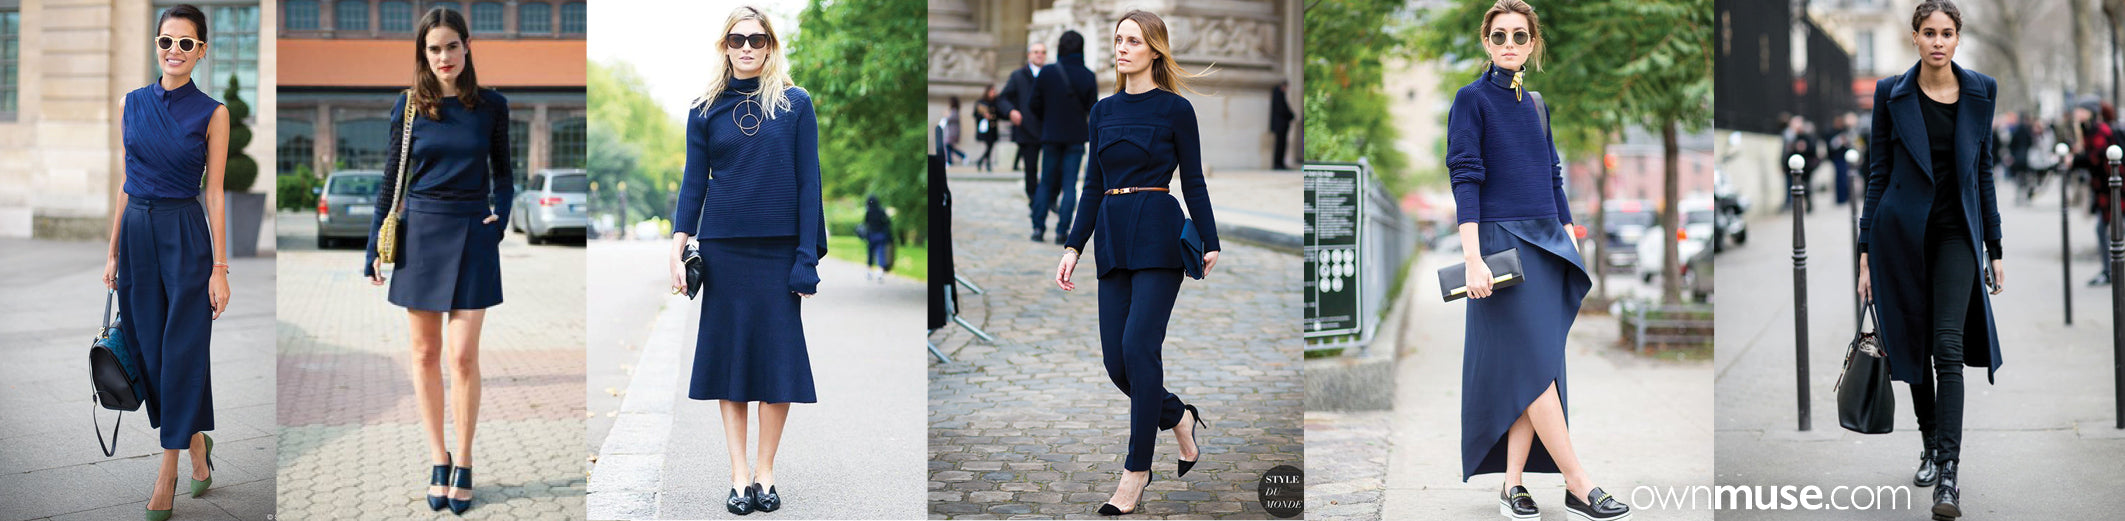 Street style fashion and style in base colour navy featured on ownmuse.com